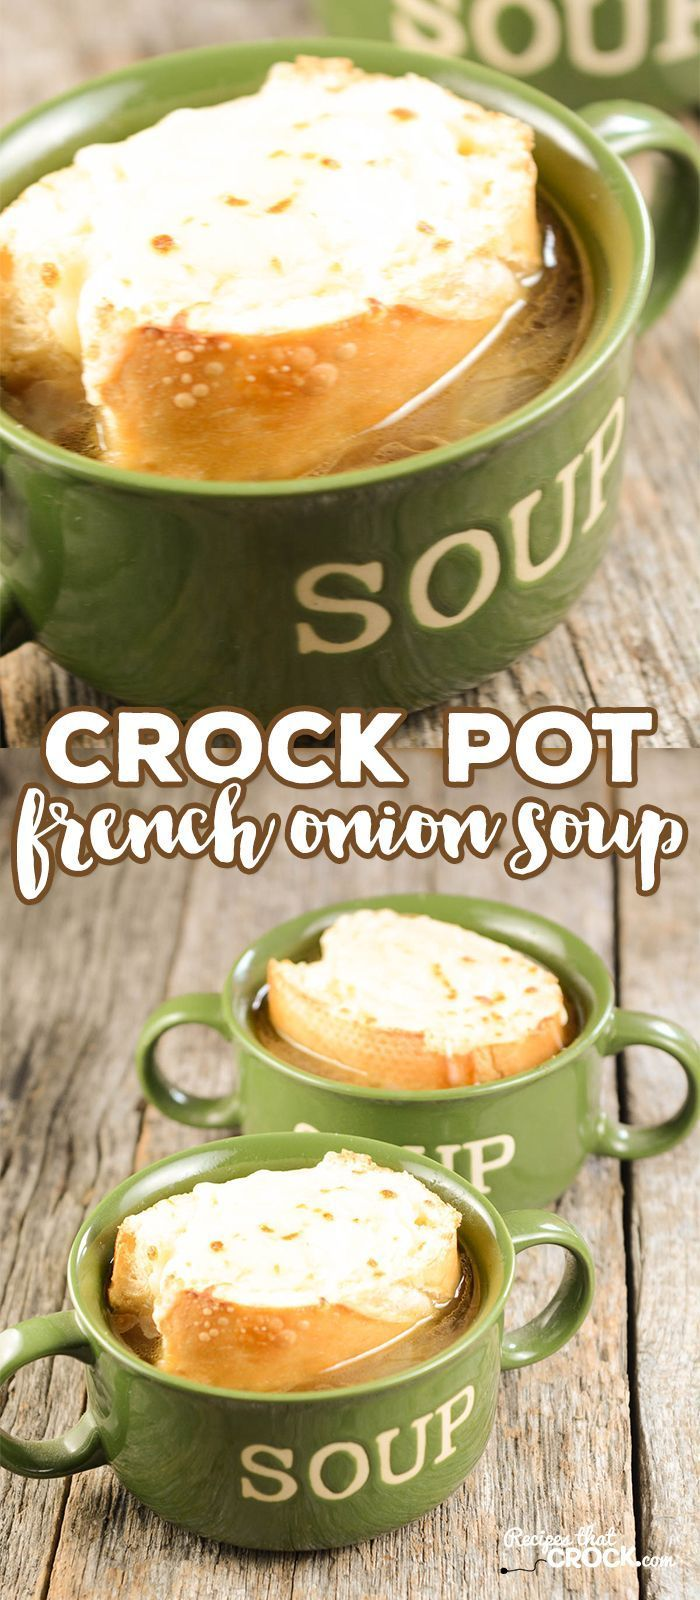 Do you love French Onion Soup? Did you know it is super easy to make in your slow cooker? This Crock Pot French Onion Soup recipe will have you whipping up your favorite restaurant soup whenever you want for a fraction of the price! #crockpotgumbo